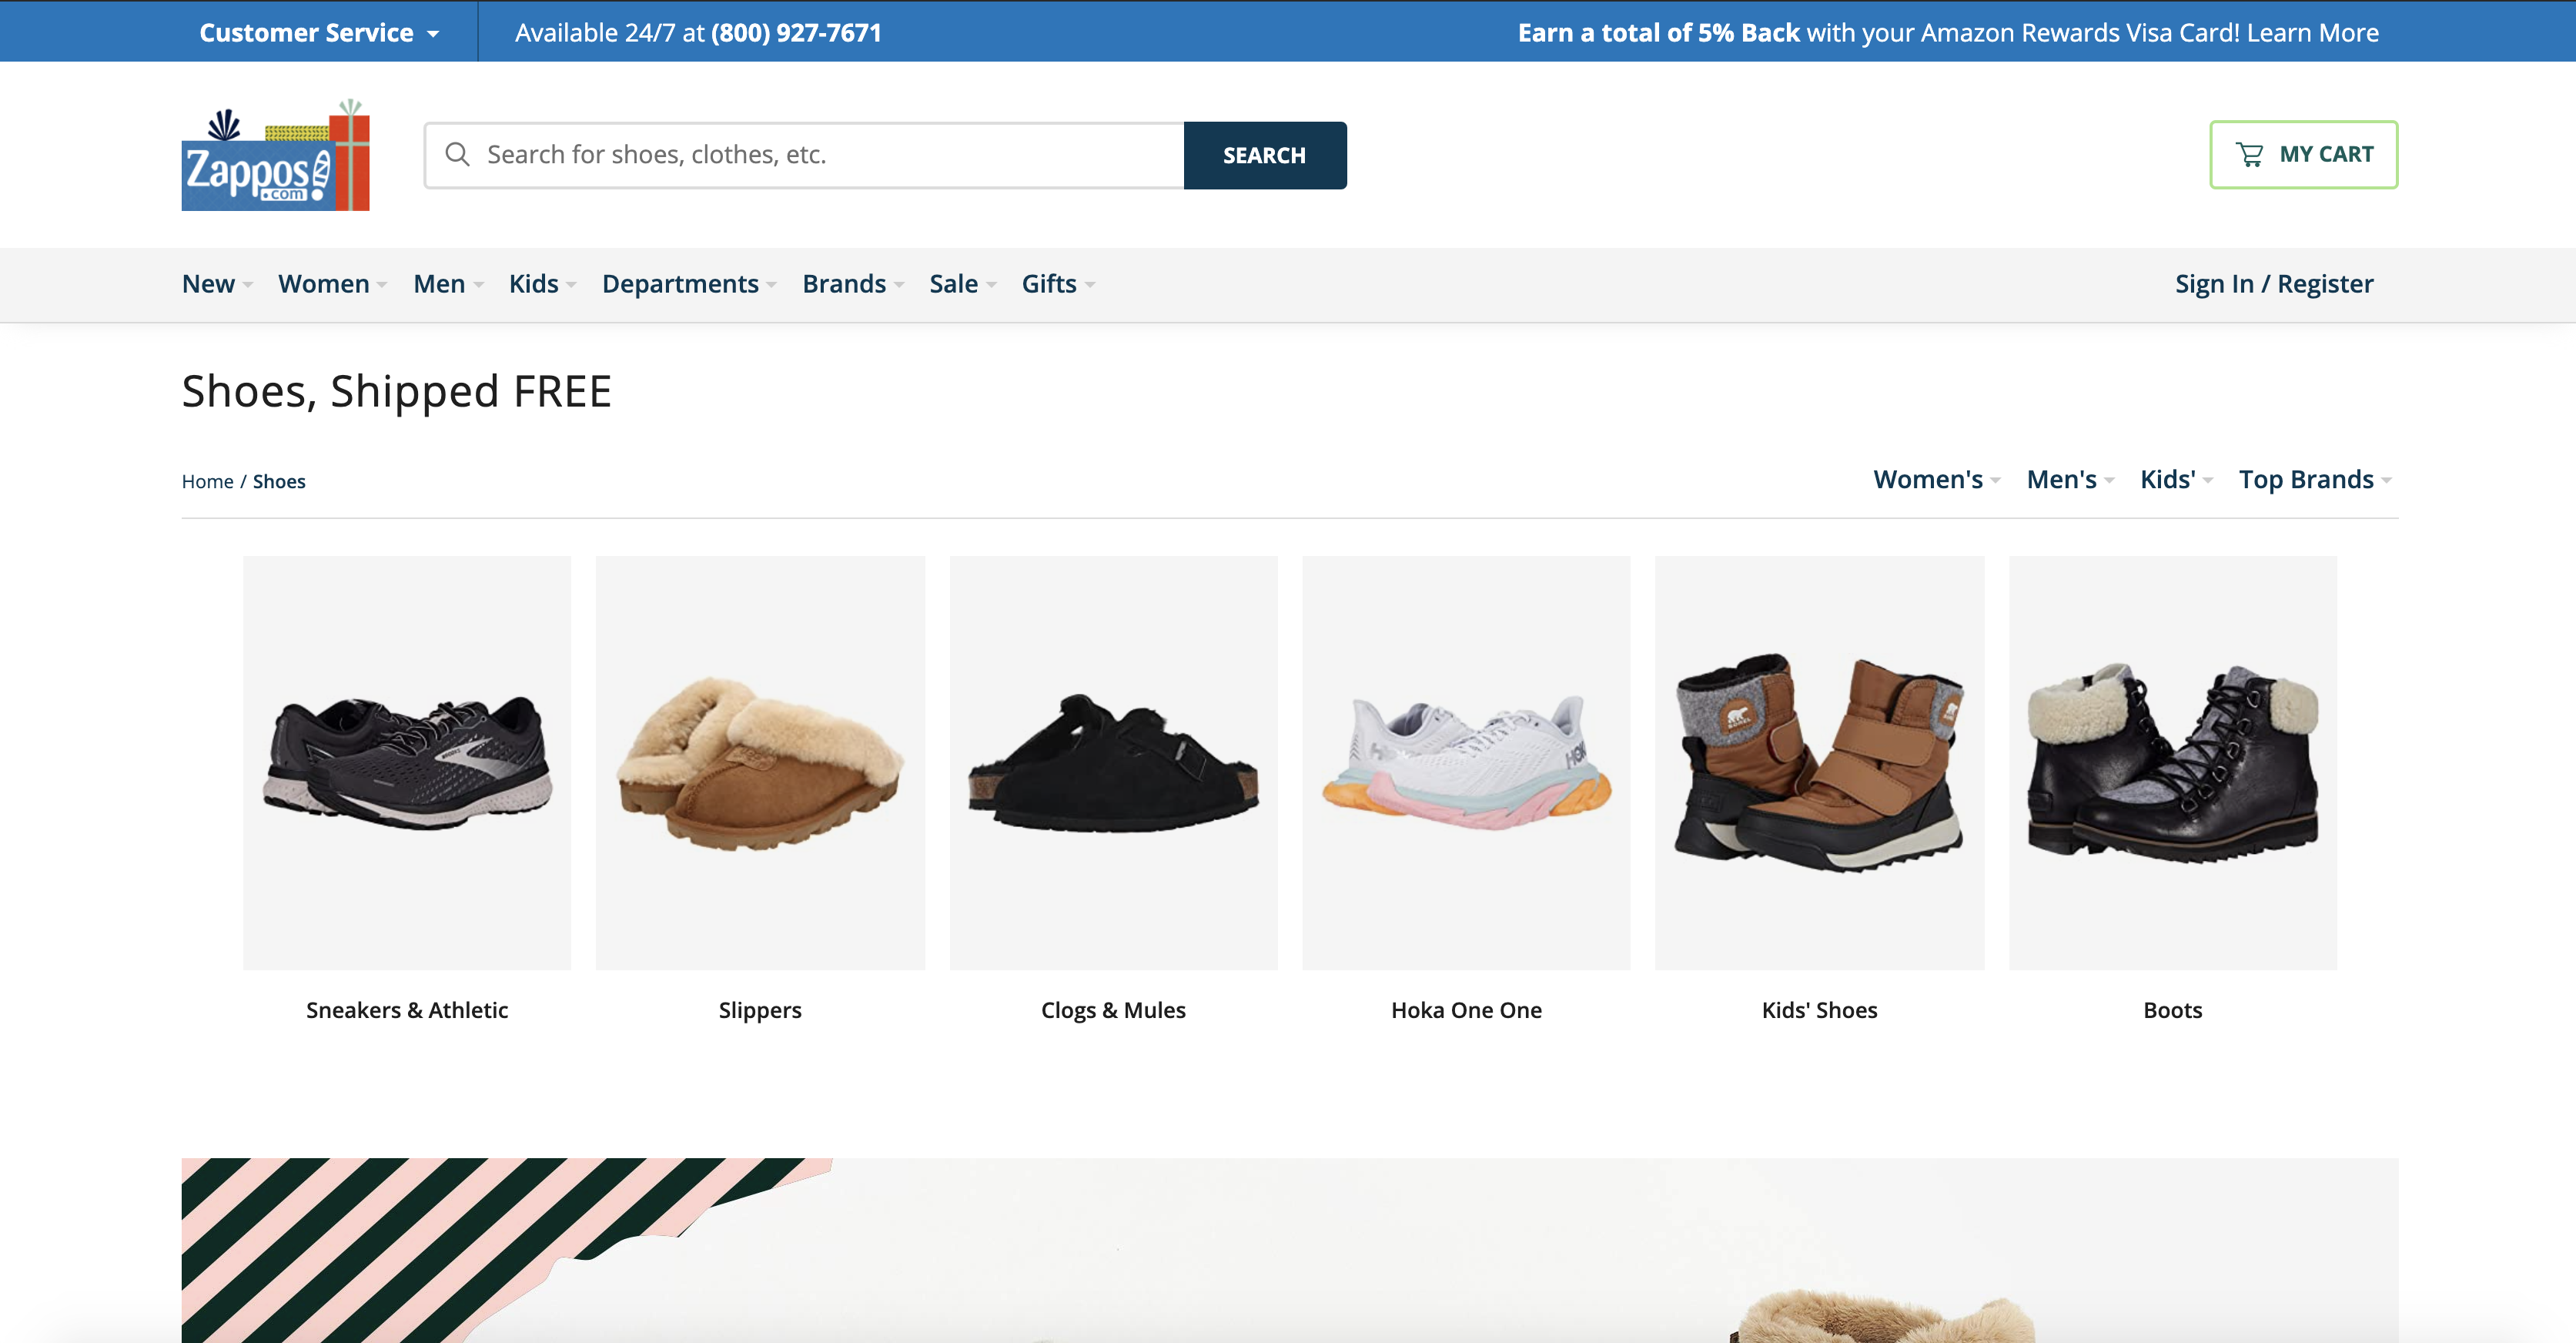 Zappos Shoes page screenshot